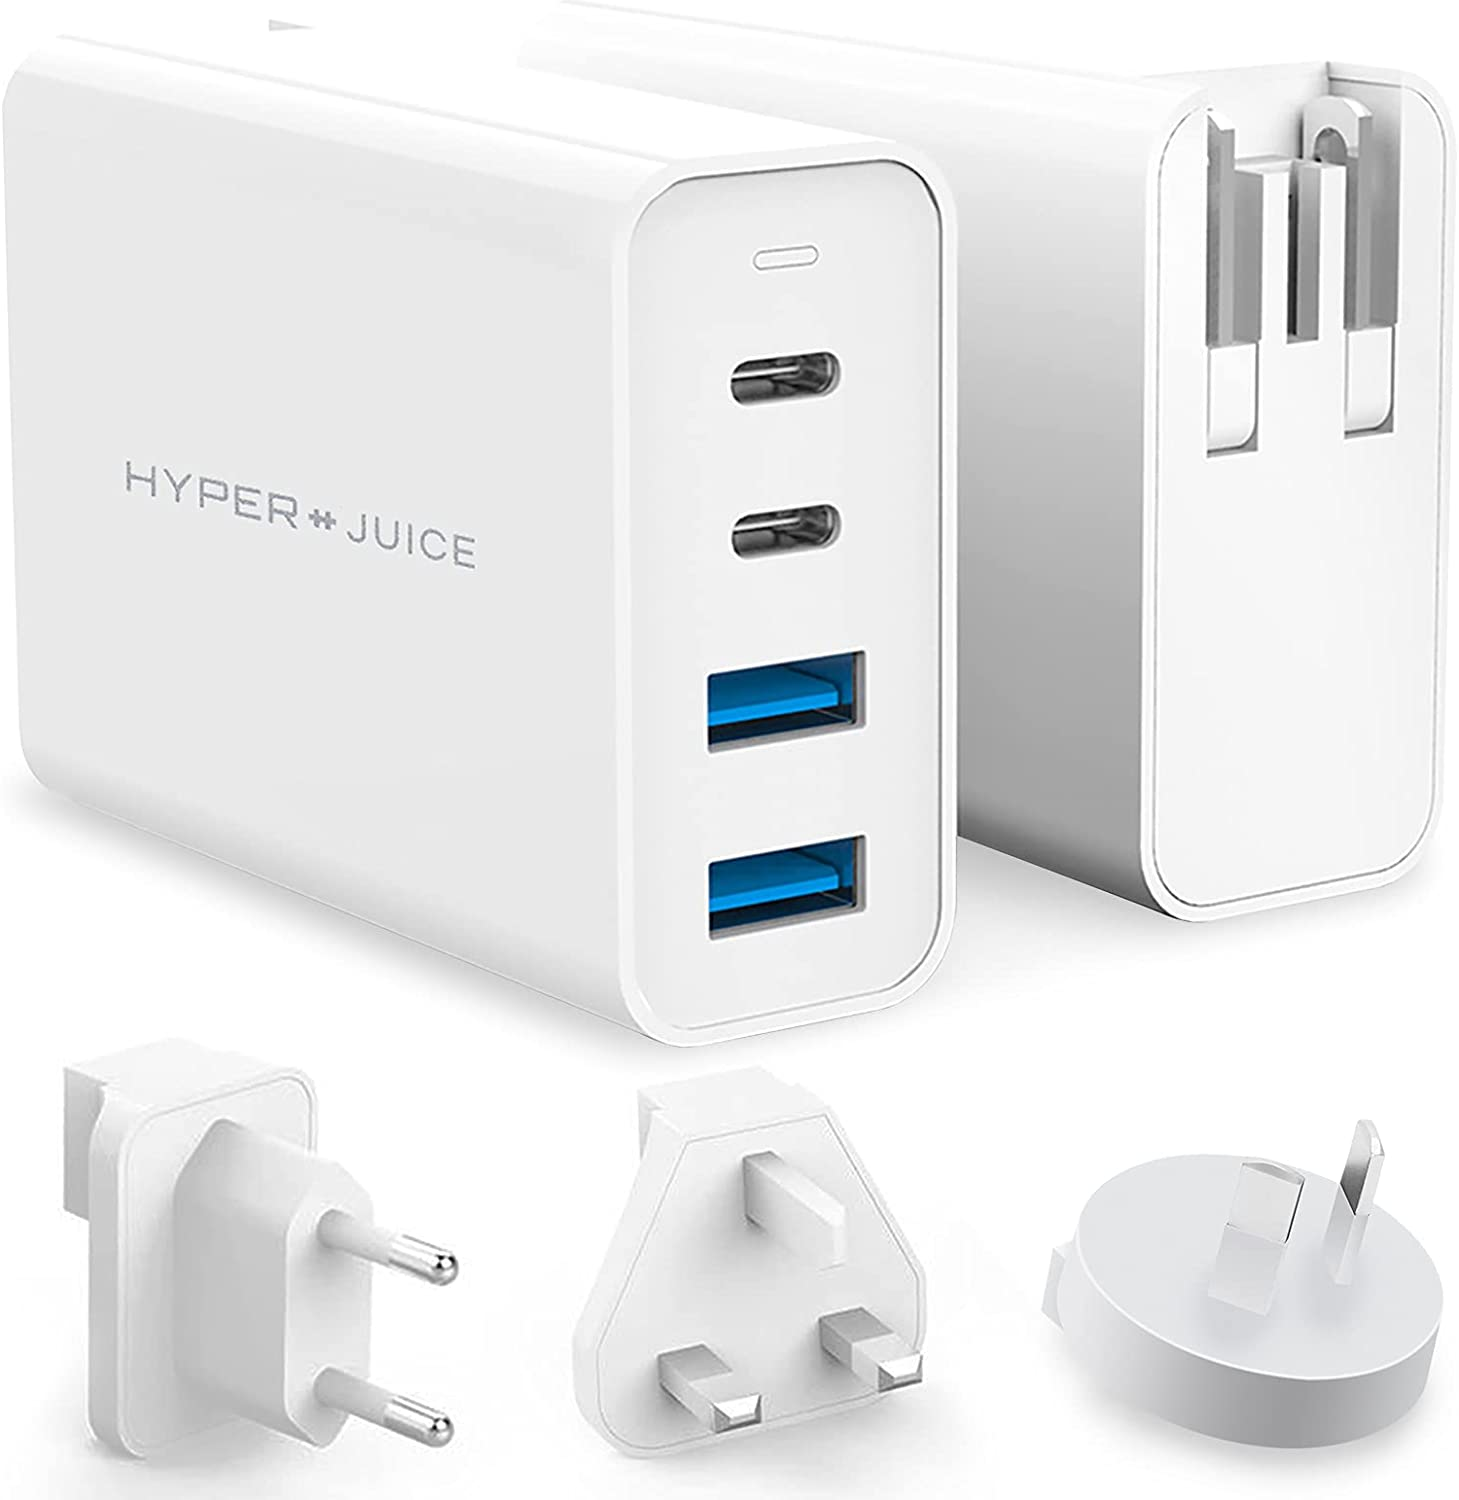 HyperJuice NEW before selling ☆ 100W GaN USB-C Fast Charger 3.0 Charge Large special price !! Quick 4-Port